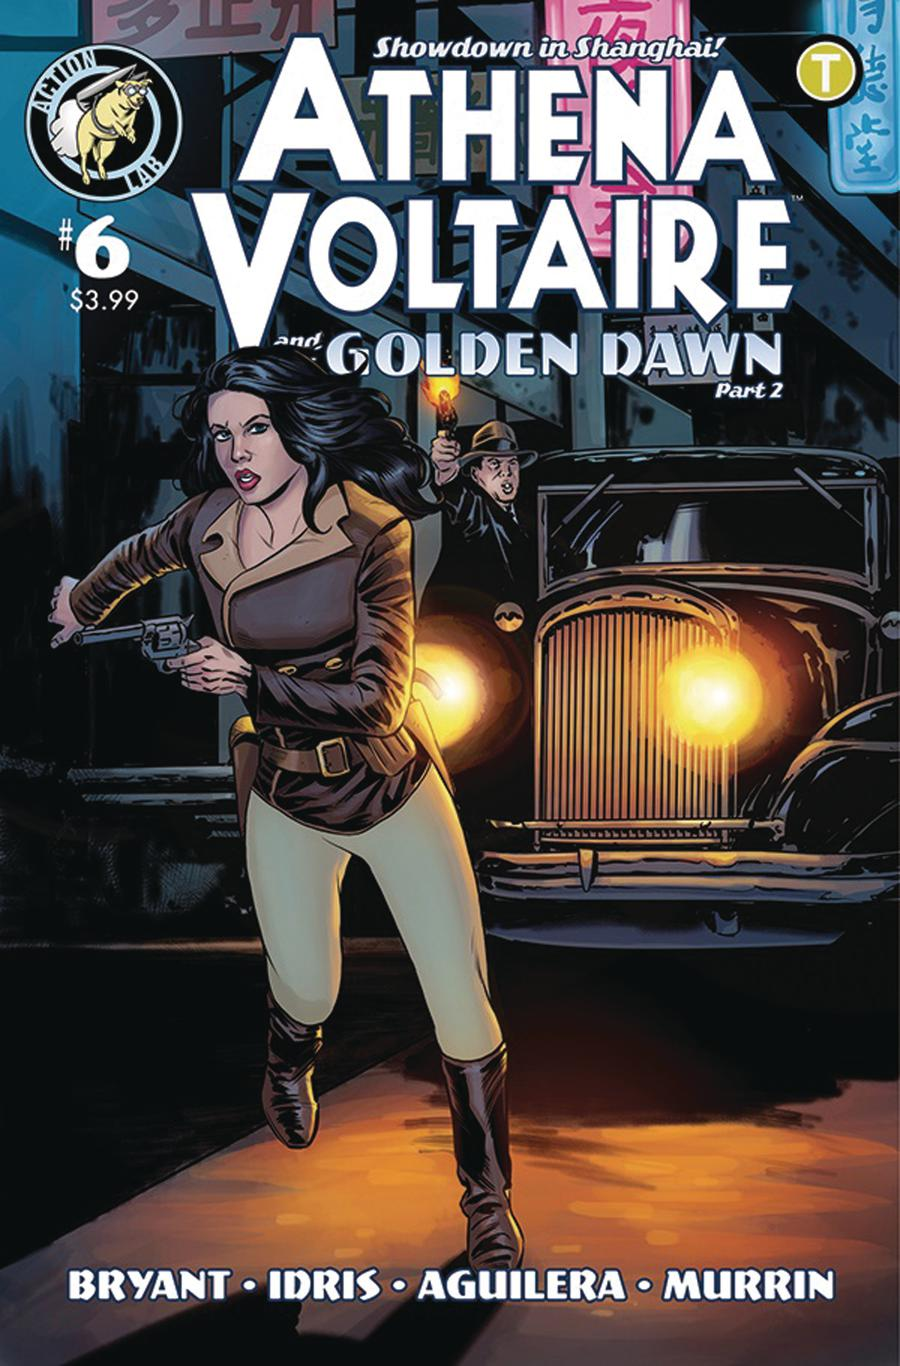 Athena Voltaire #6 Cover A Regular Steve Bryant Cover